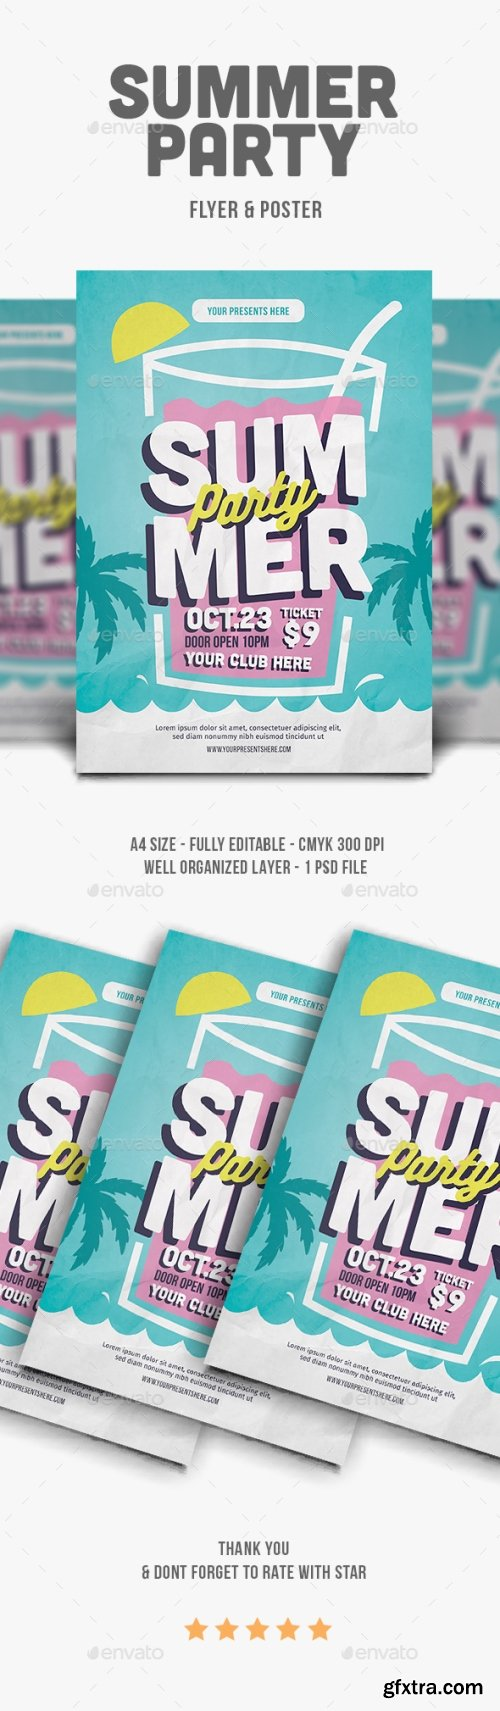 Graphicriver - Summer Party Flyer 21937299